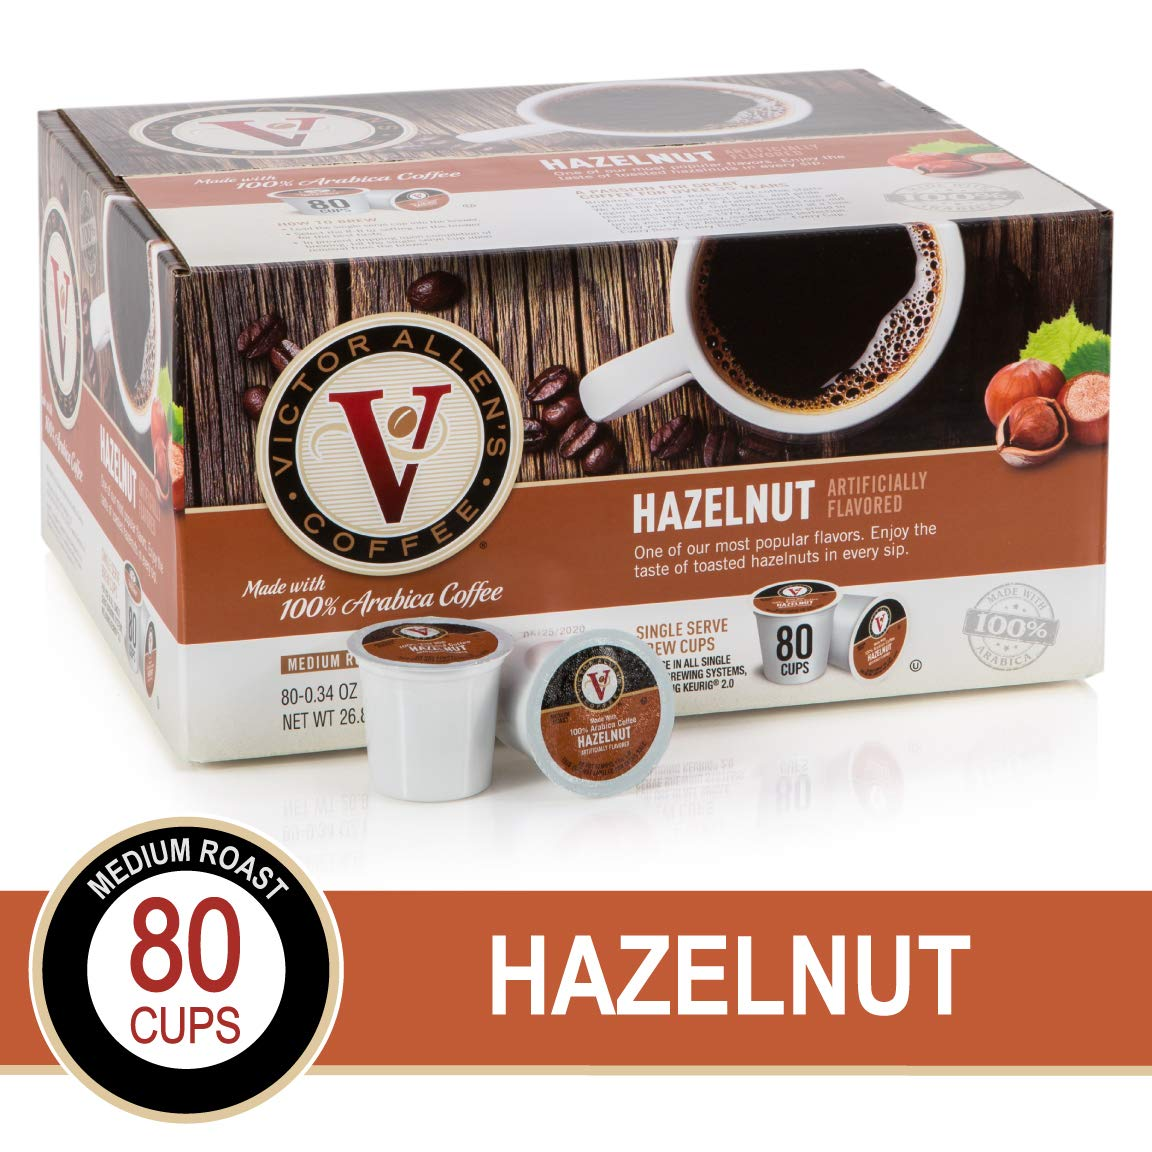 Hazelnut for K-Cup Keurig 2.0 Brewers, 80 Count, Victor Allen's Coffee Medium Roast Single Serve Coffee Pods by Victor Allen (Image #1)